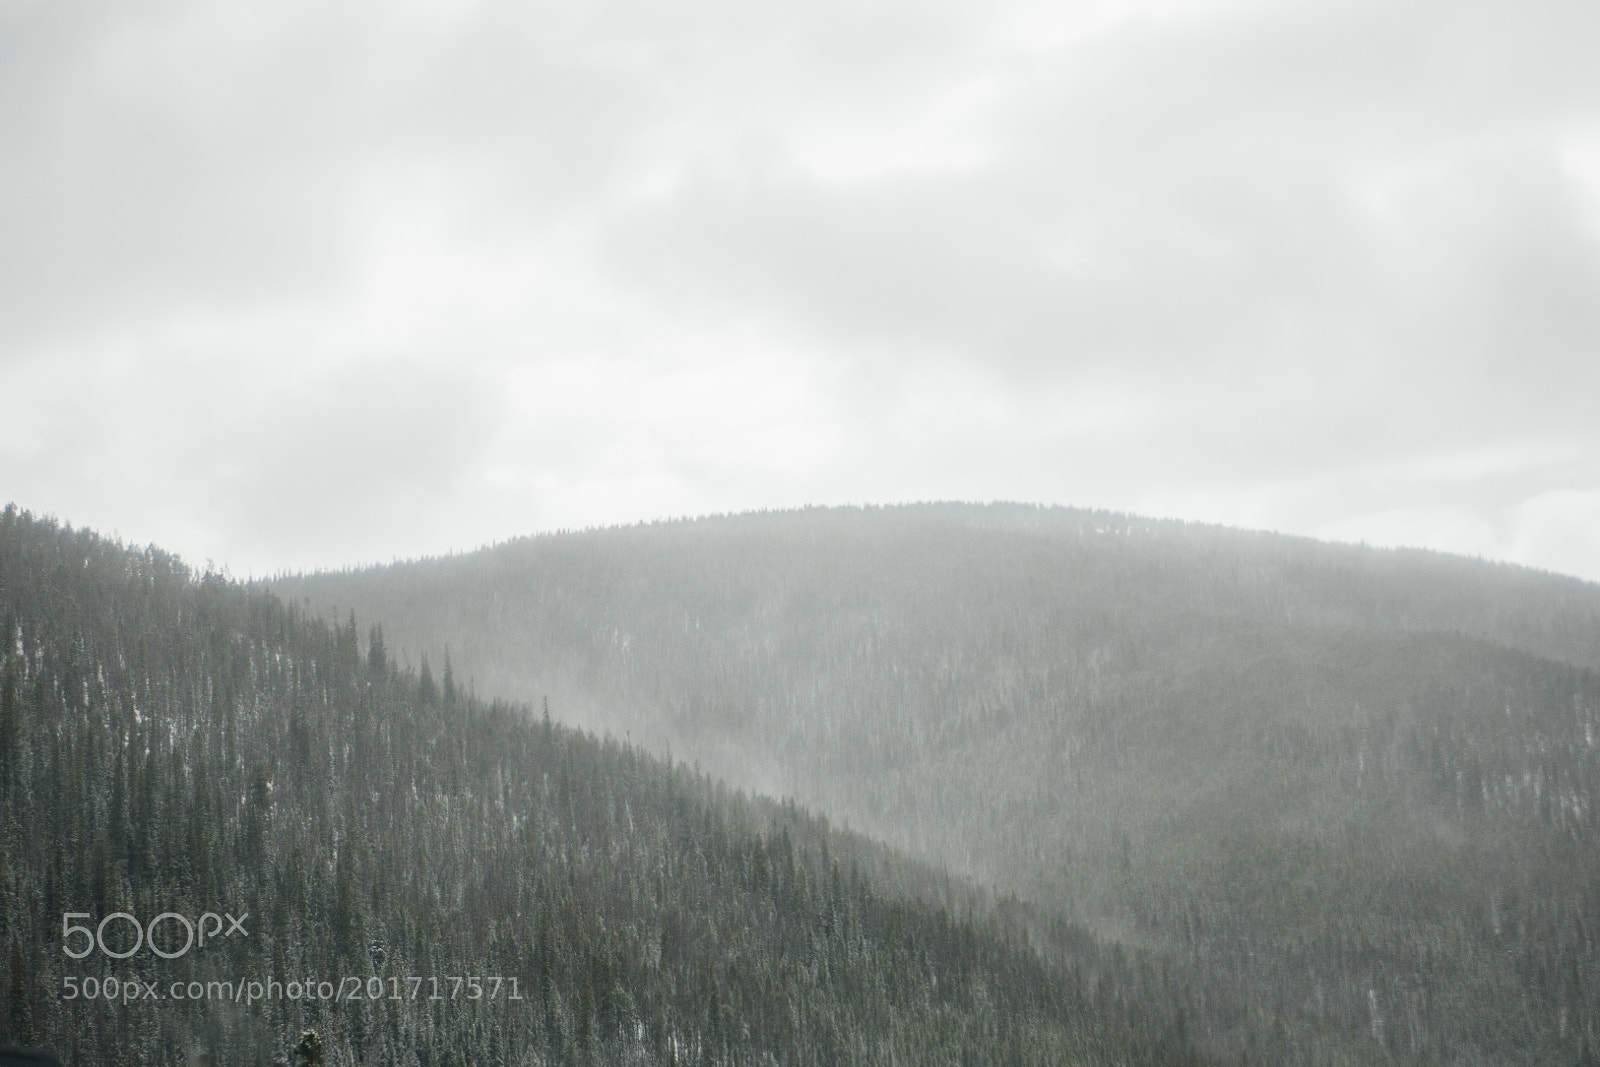 Misty Mountain, Canon EOS 5D, EF28-70mm f/2.8L USM